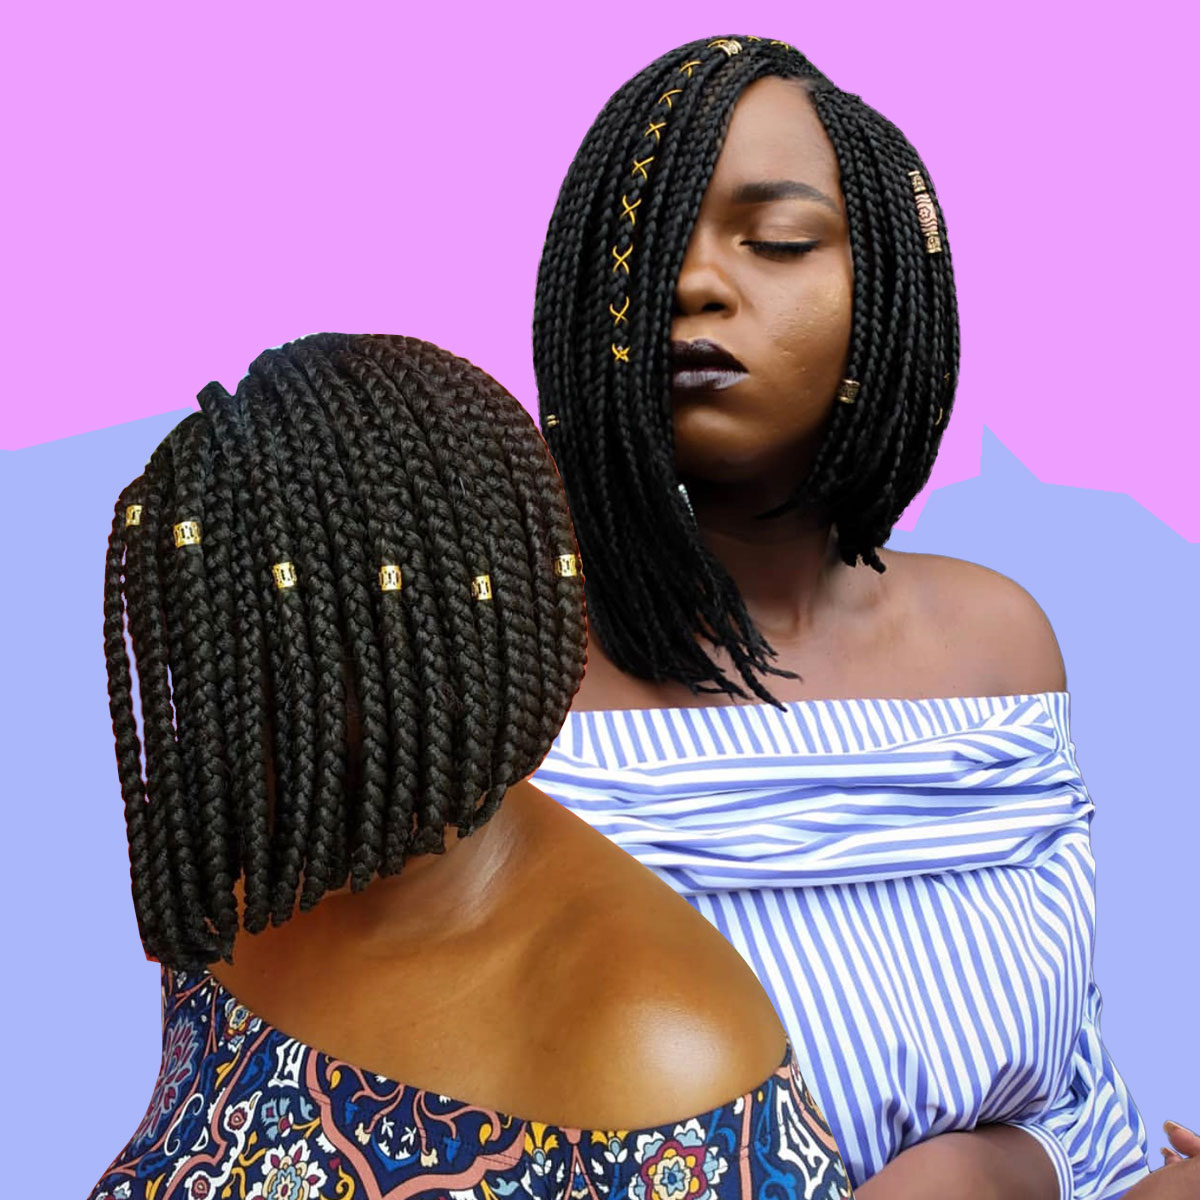 17 Beautiful Braided Bobs From Instagram You Need To Give A Try Within Trendy Beaded Bangs Braided Hairstyles (Gallery 16 of 20)